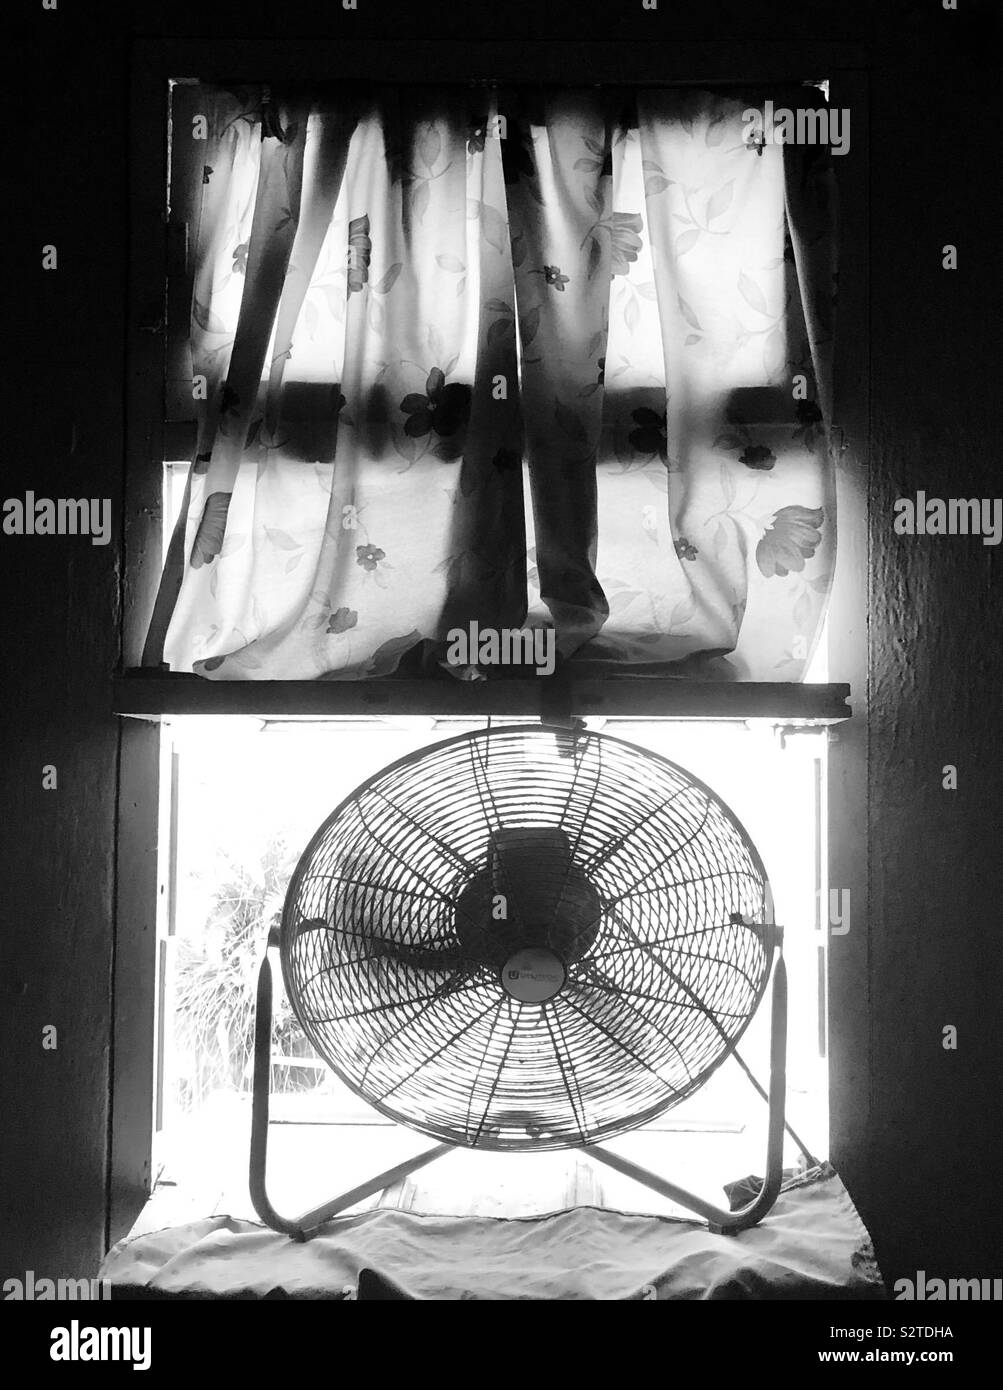 Floor fan sitting on window on a hot and sunny day. Stock Photo